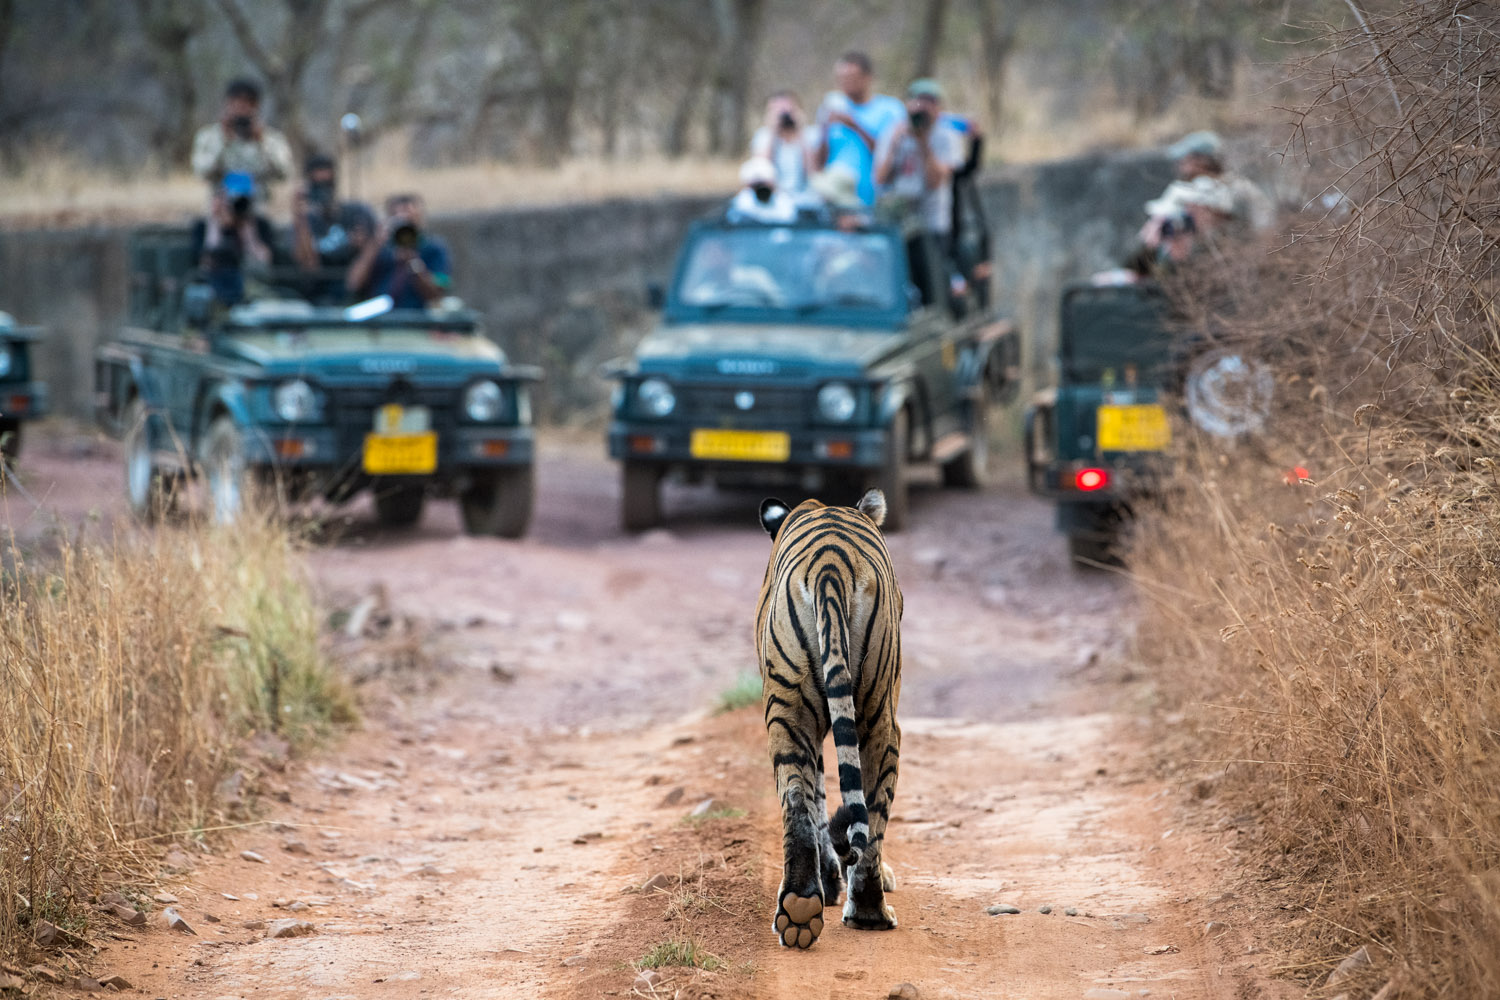 Bengal tigress approaching tourists in jeeps, Ranthambhore National Park, Rajasthan, India